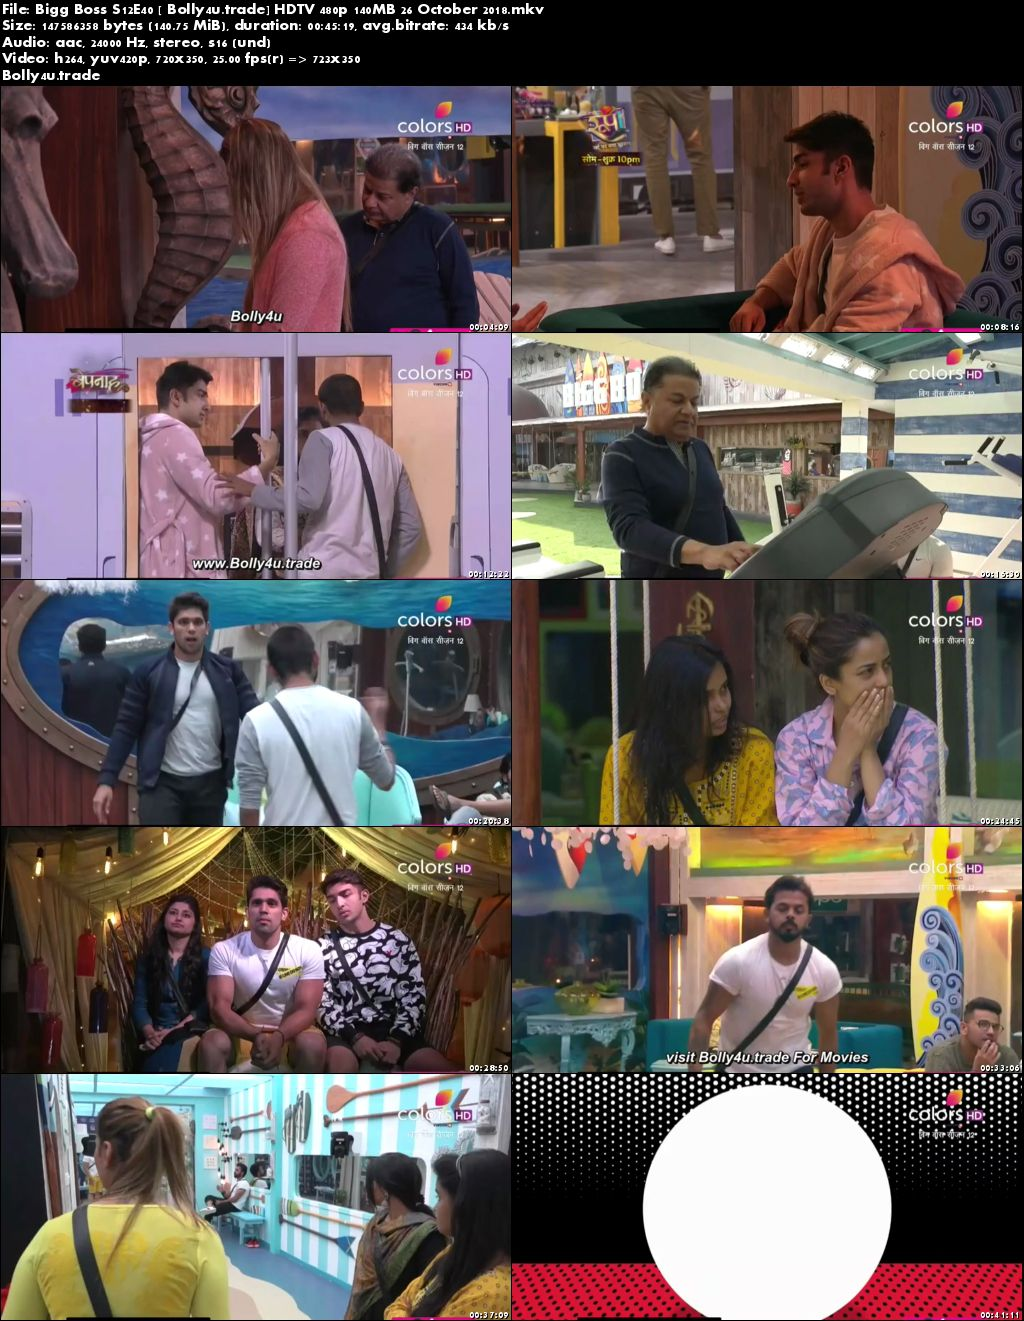 Bigg Boss S12E40 HDTV 480p 140MB 26 October 2018 Download